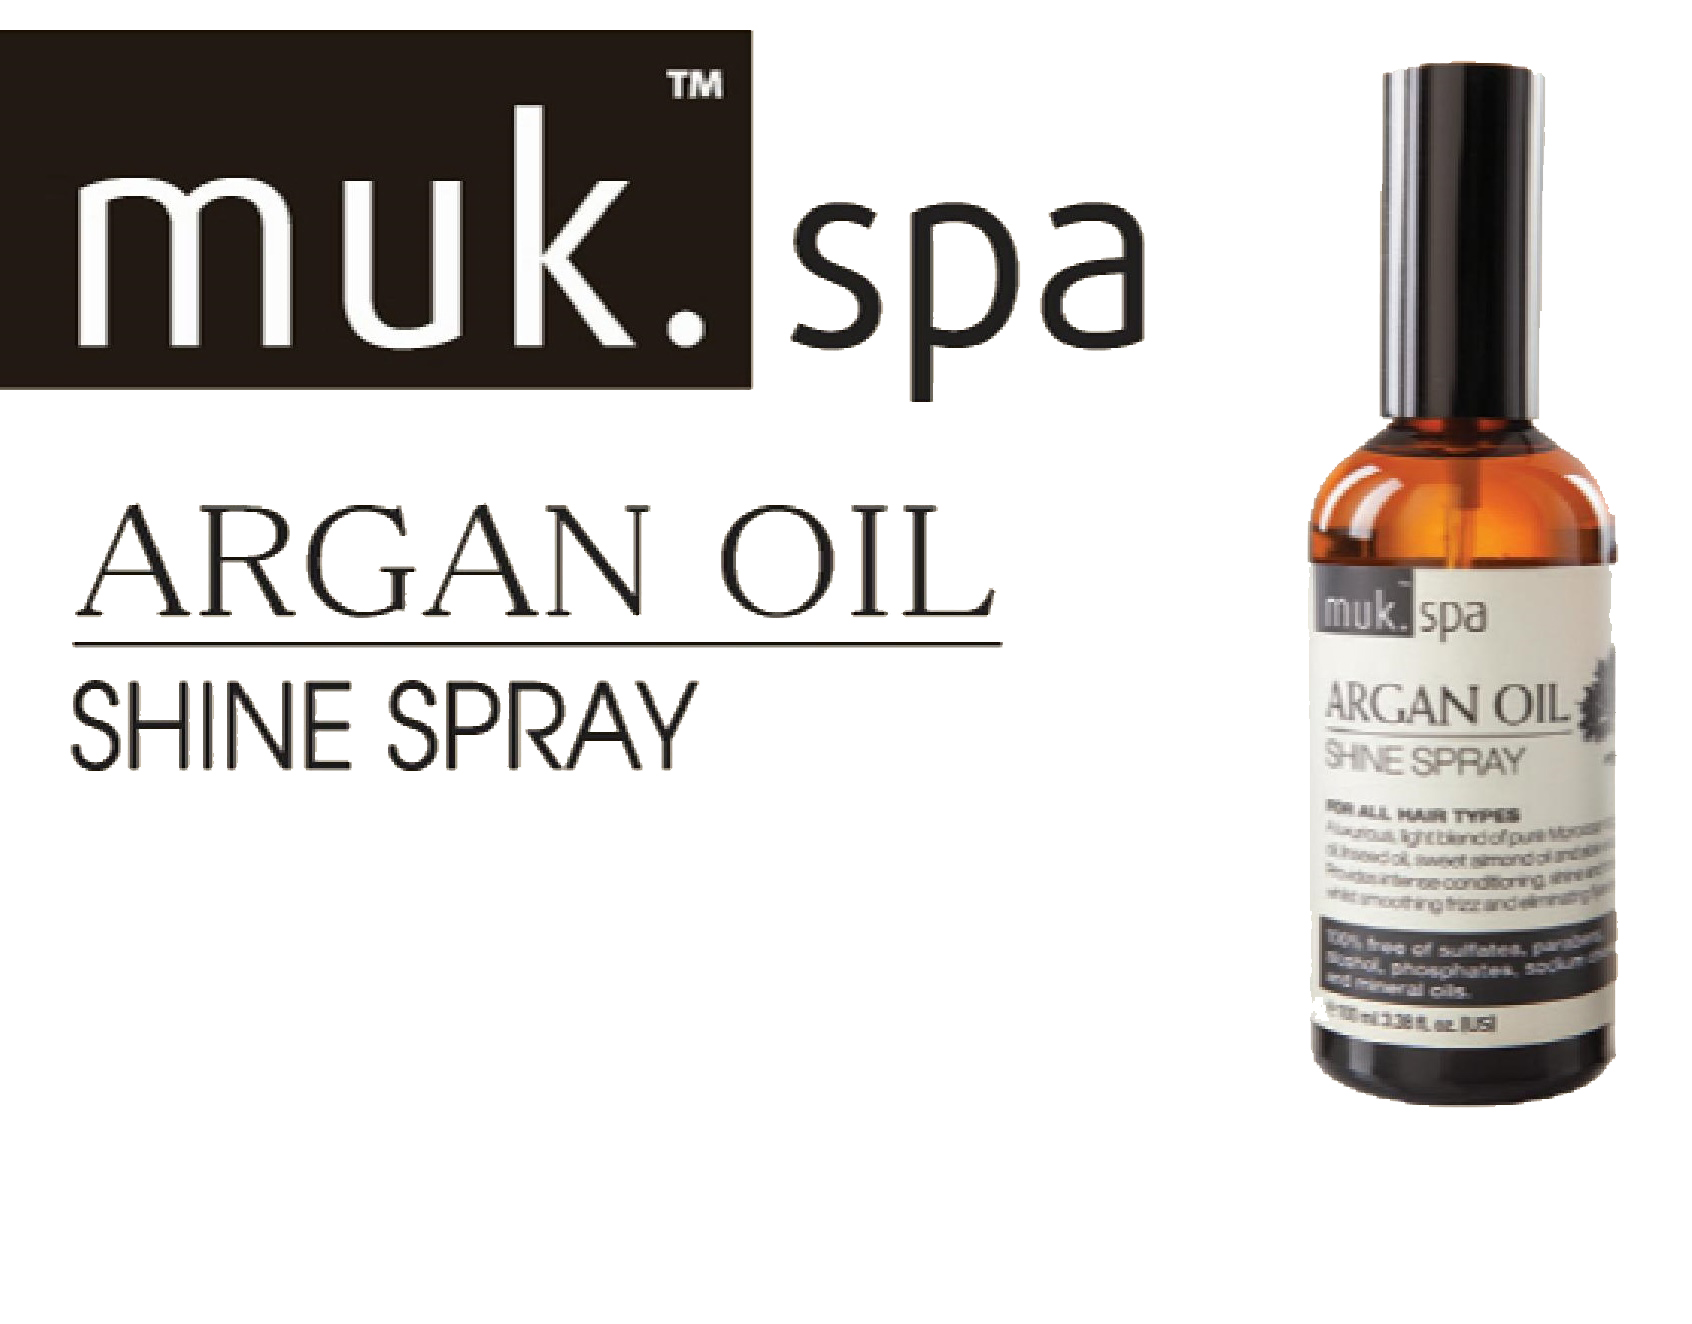 argan-oil-shine-spray